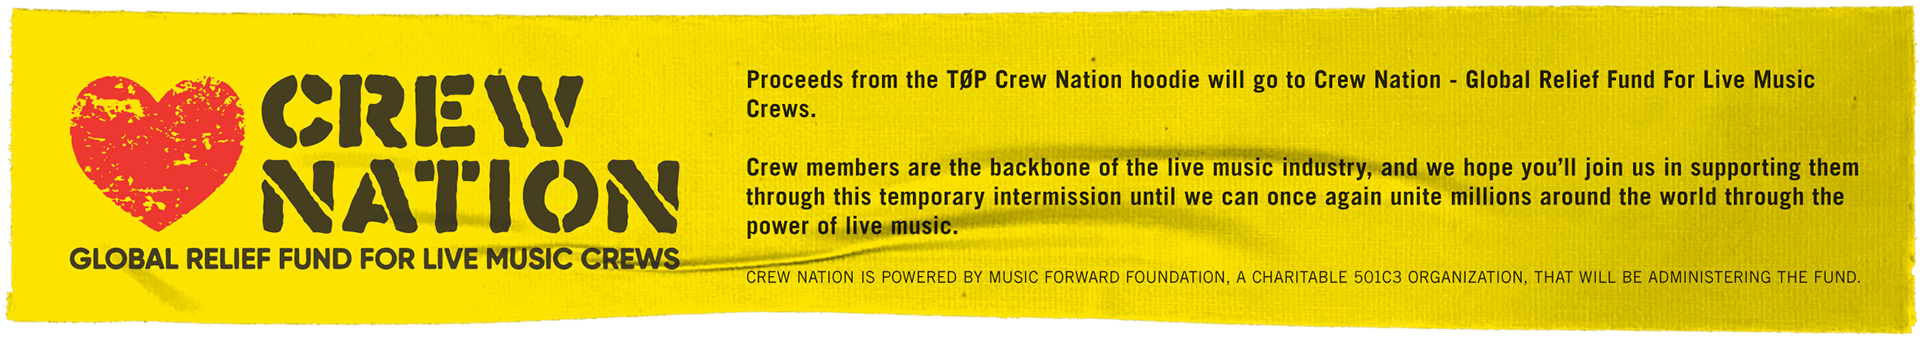 Proceeds from the Crew Nation hoodie will go to Crew Nation - global relief fund for live music Crews